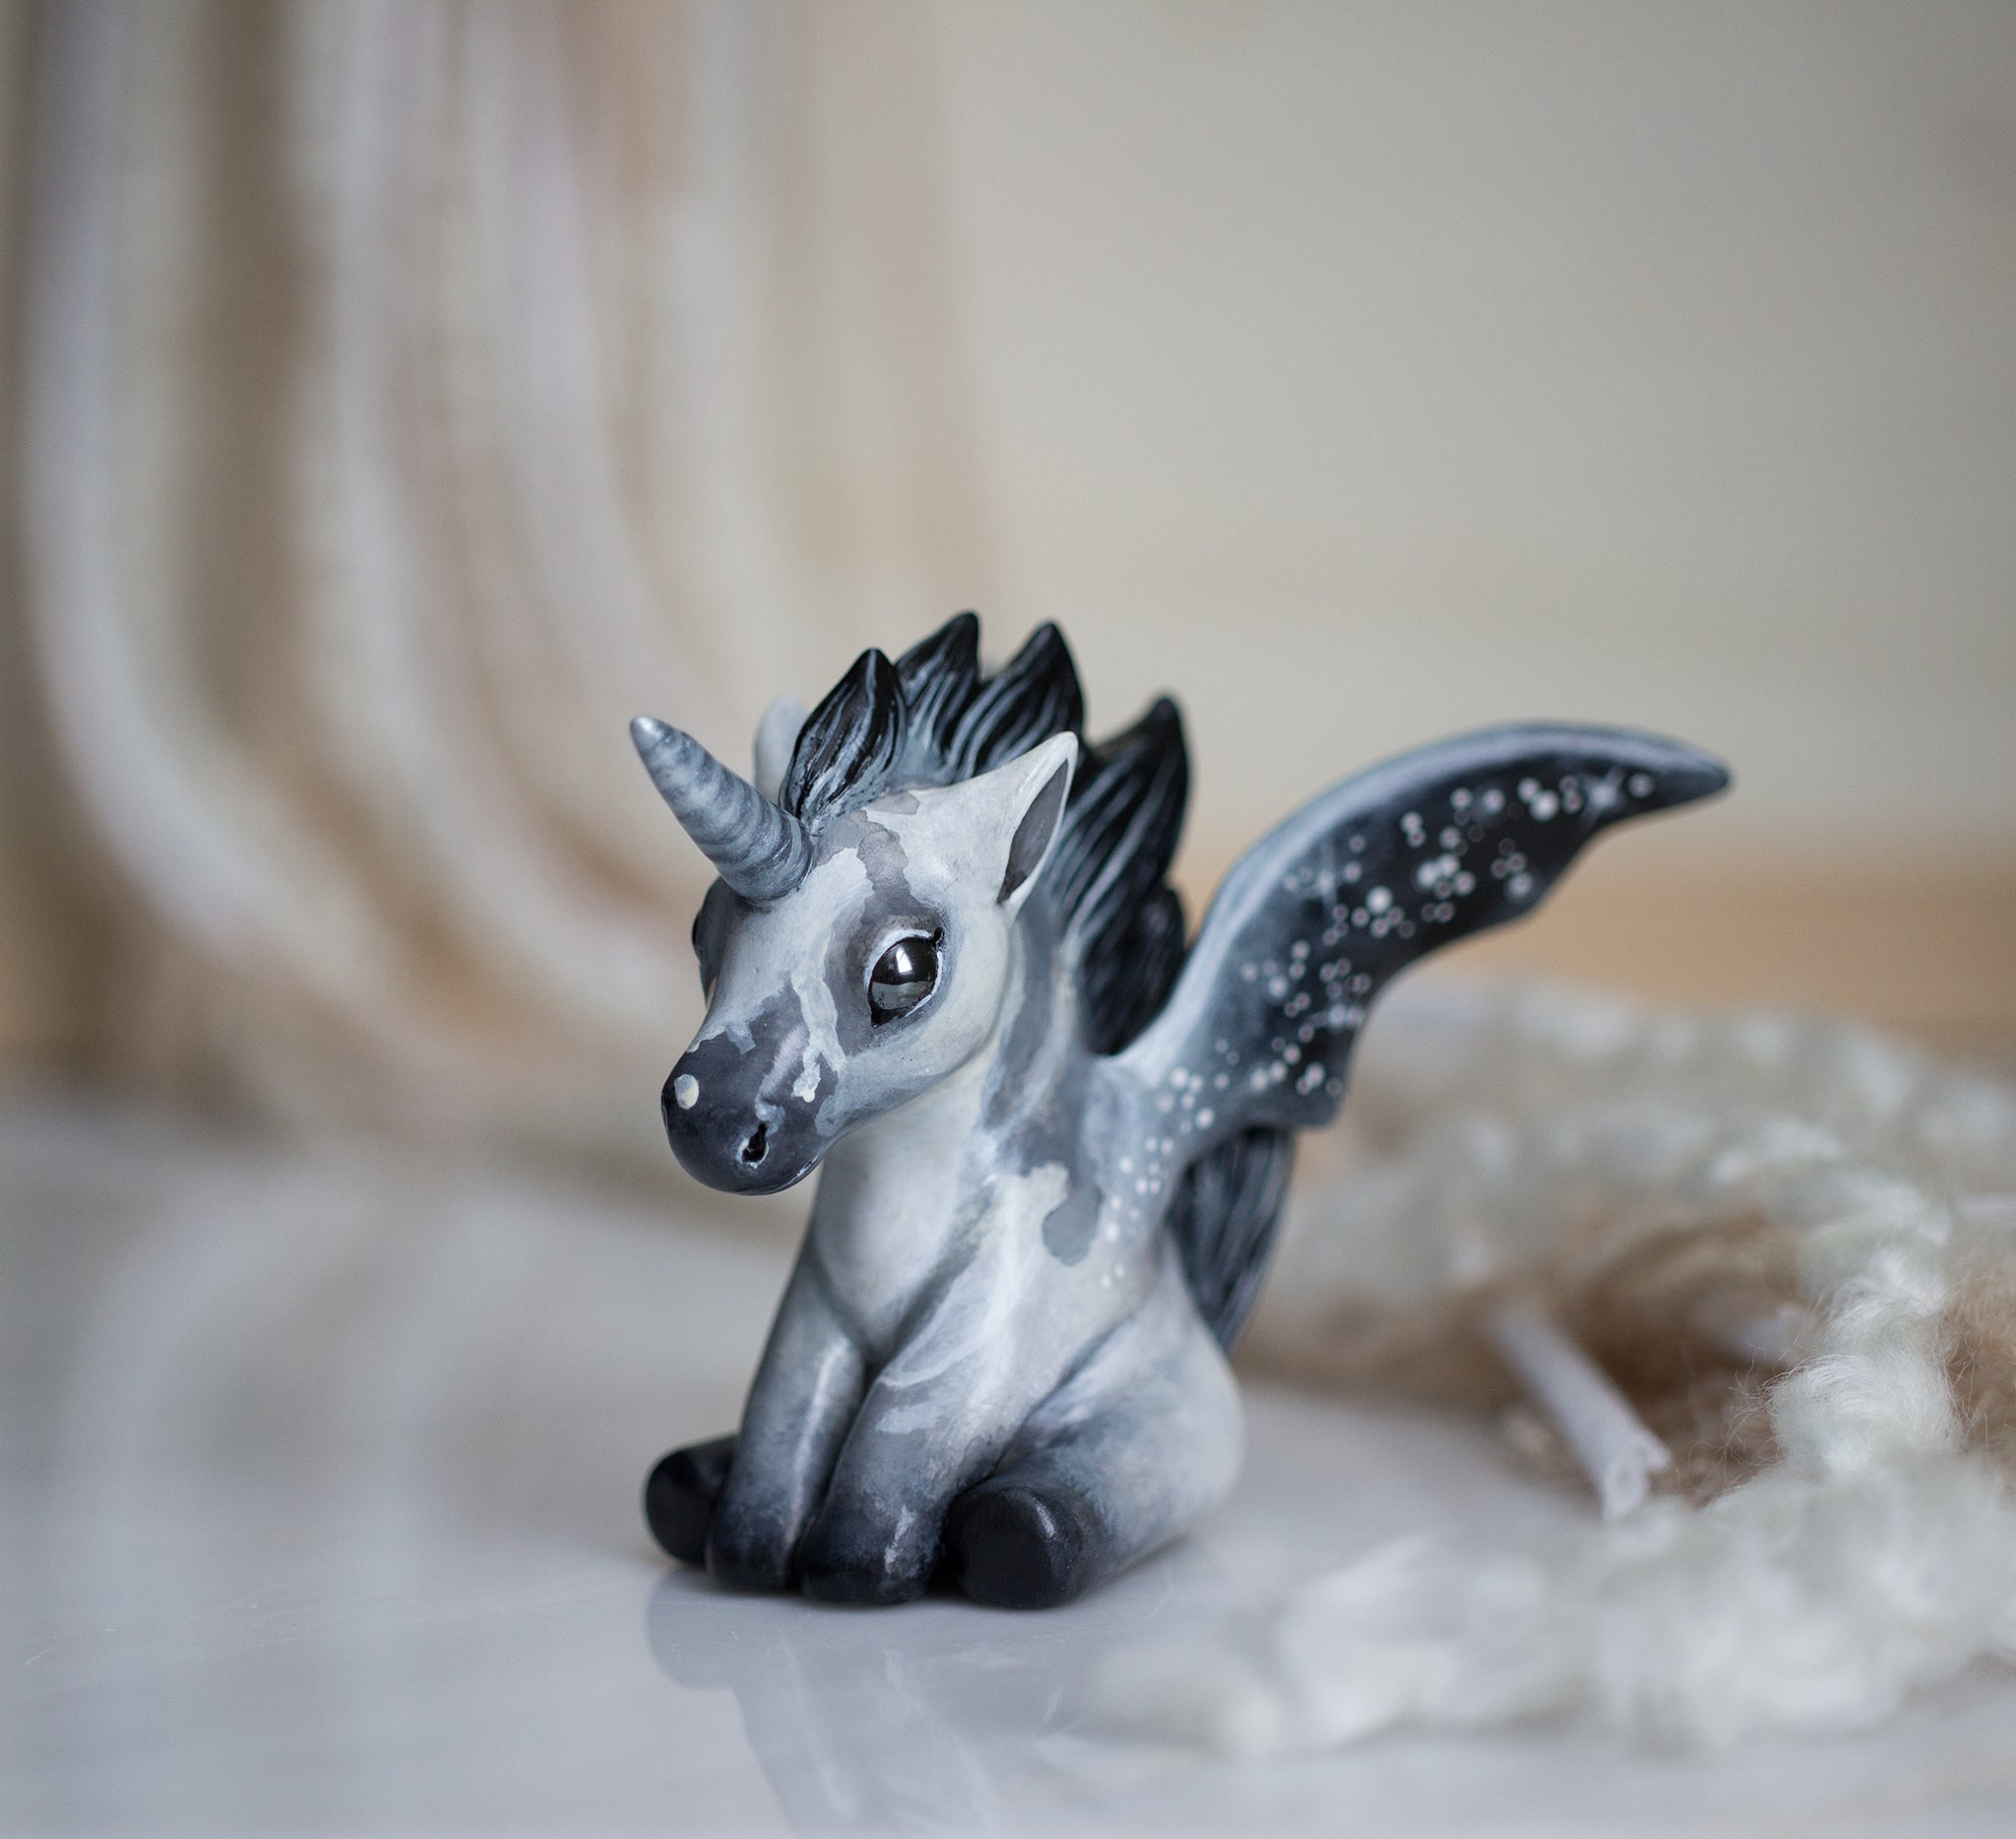 Bat Winged Pegapony Figurine